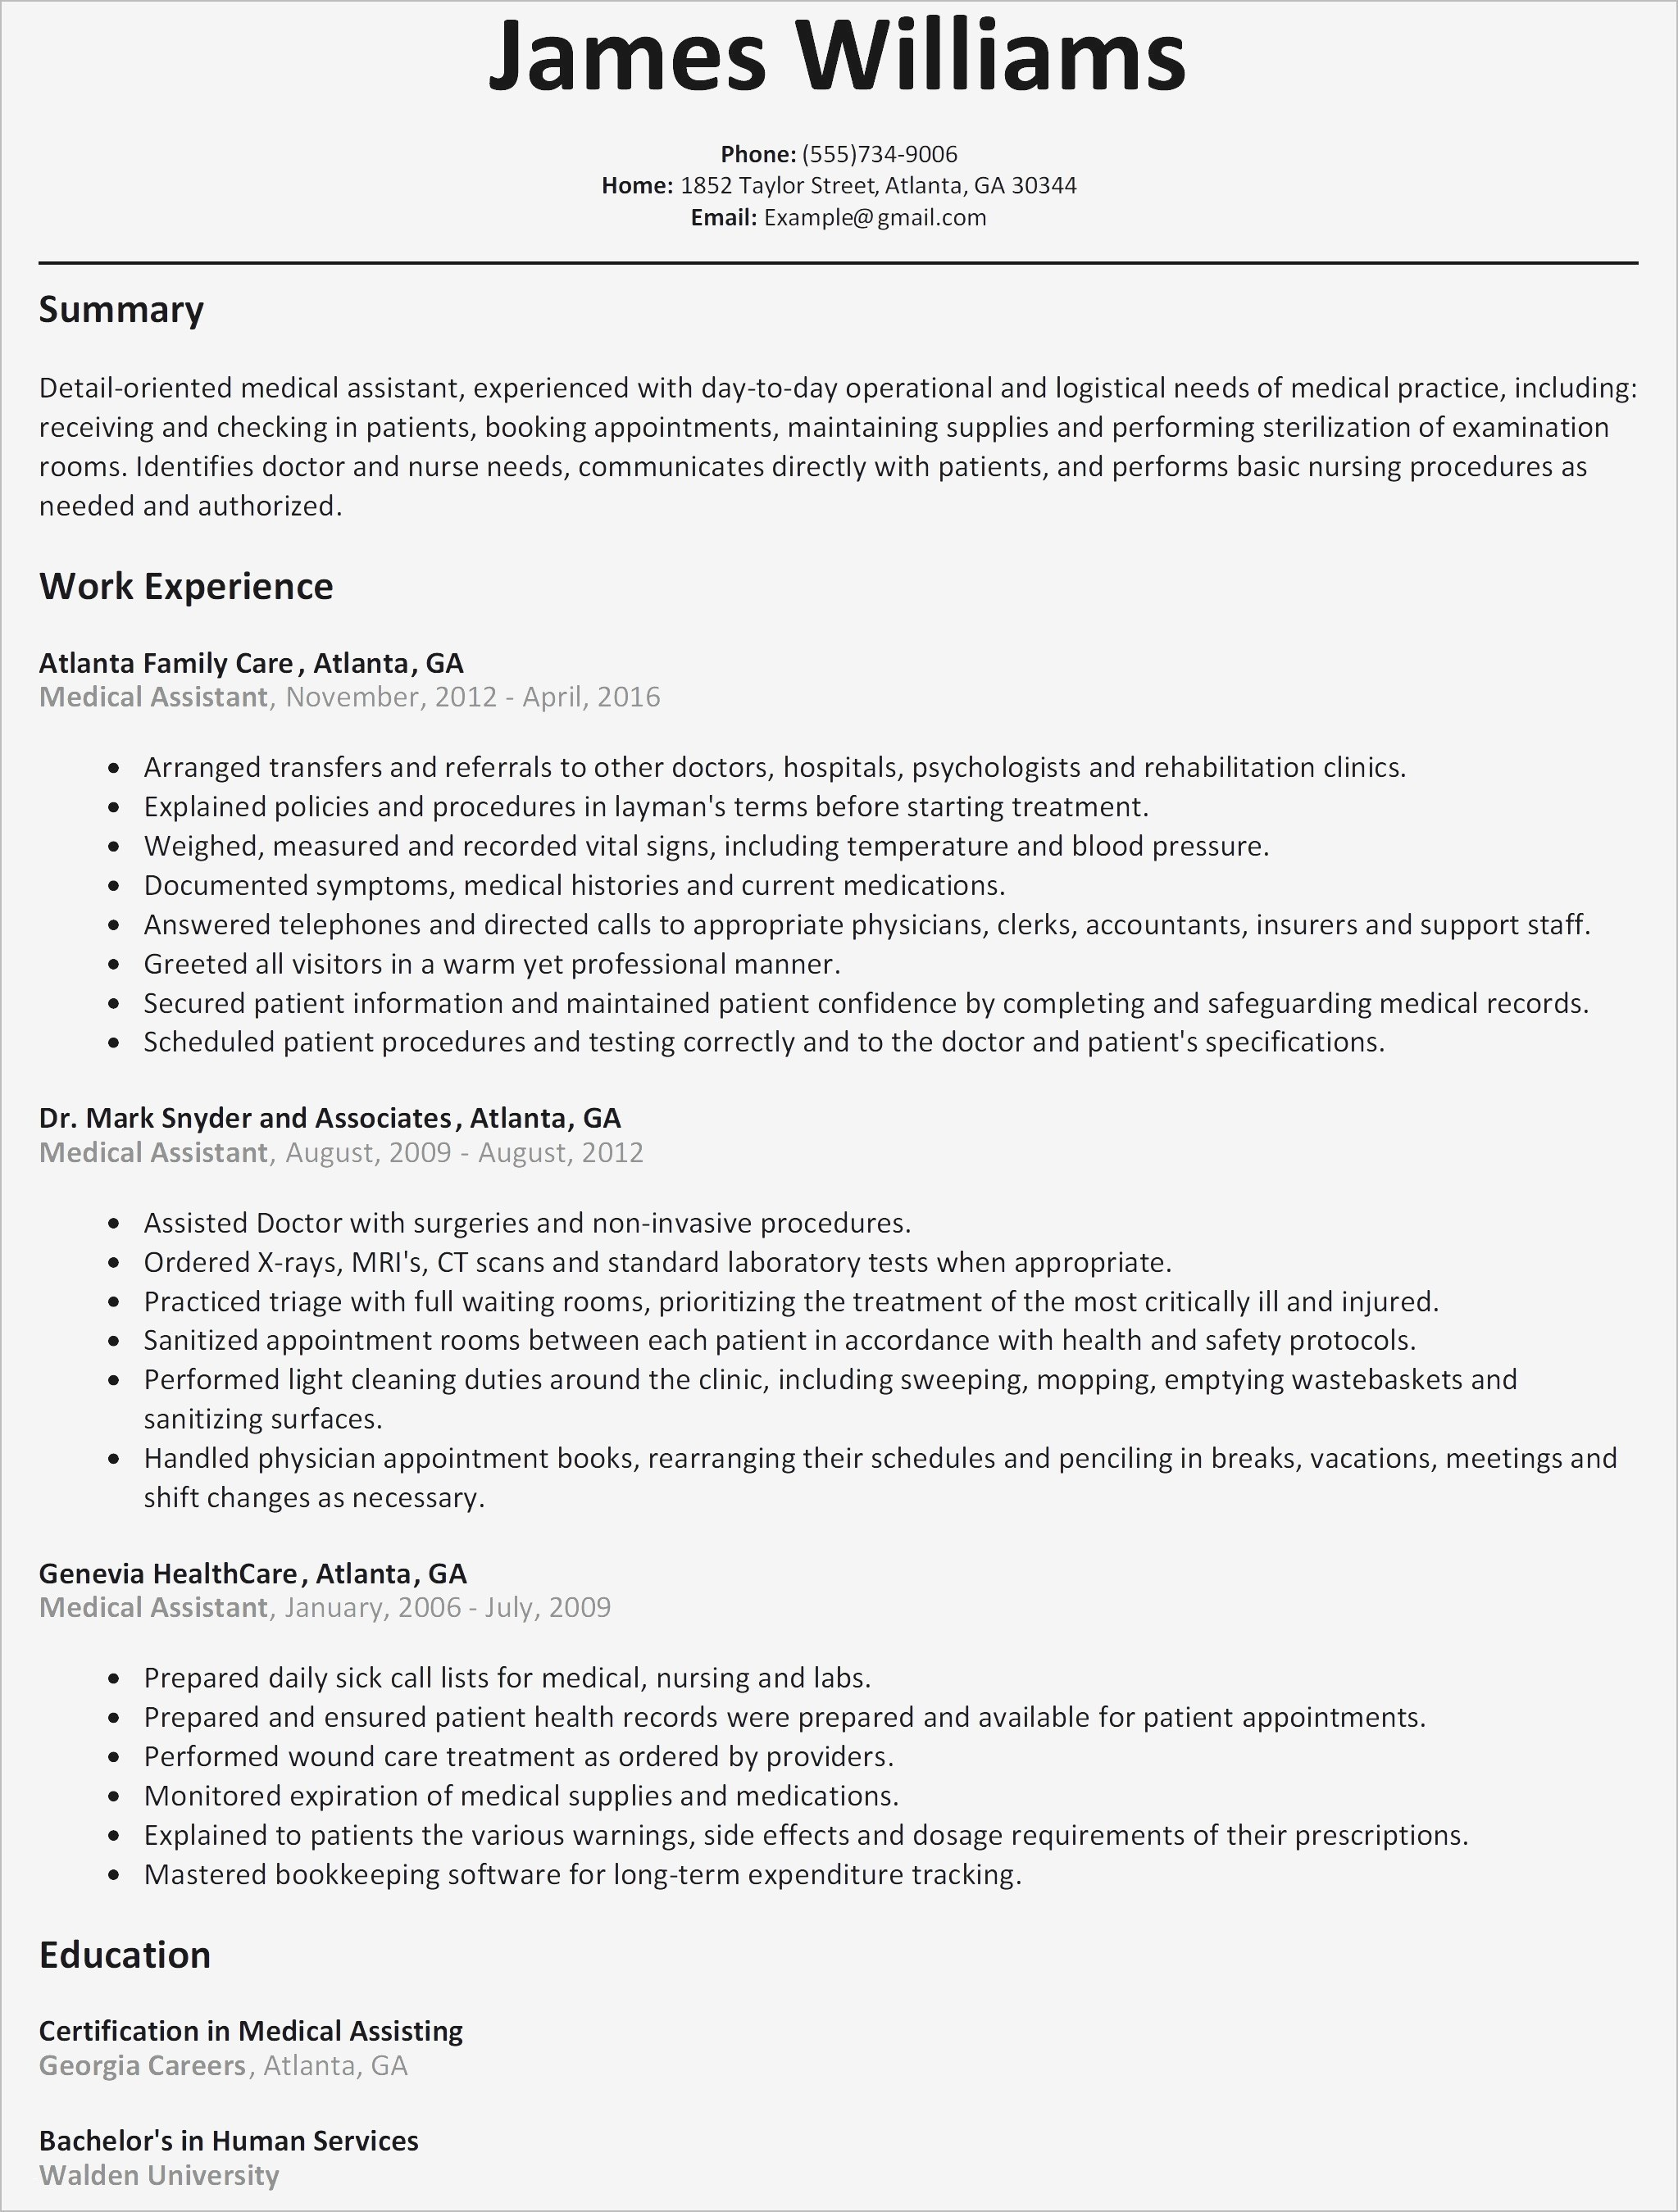 Www Indeed Com Resume - Indeed Resumes Inspirational Help Desk New Help Desk Resume From